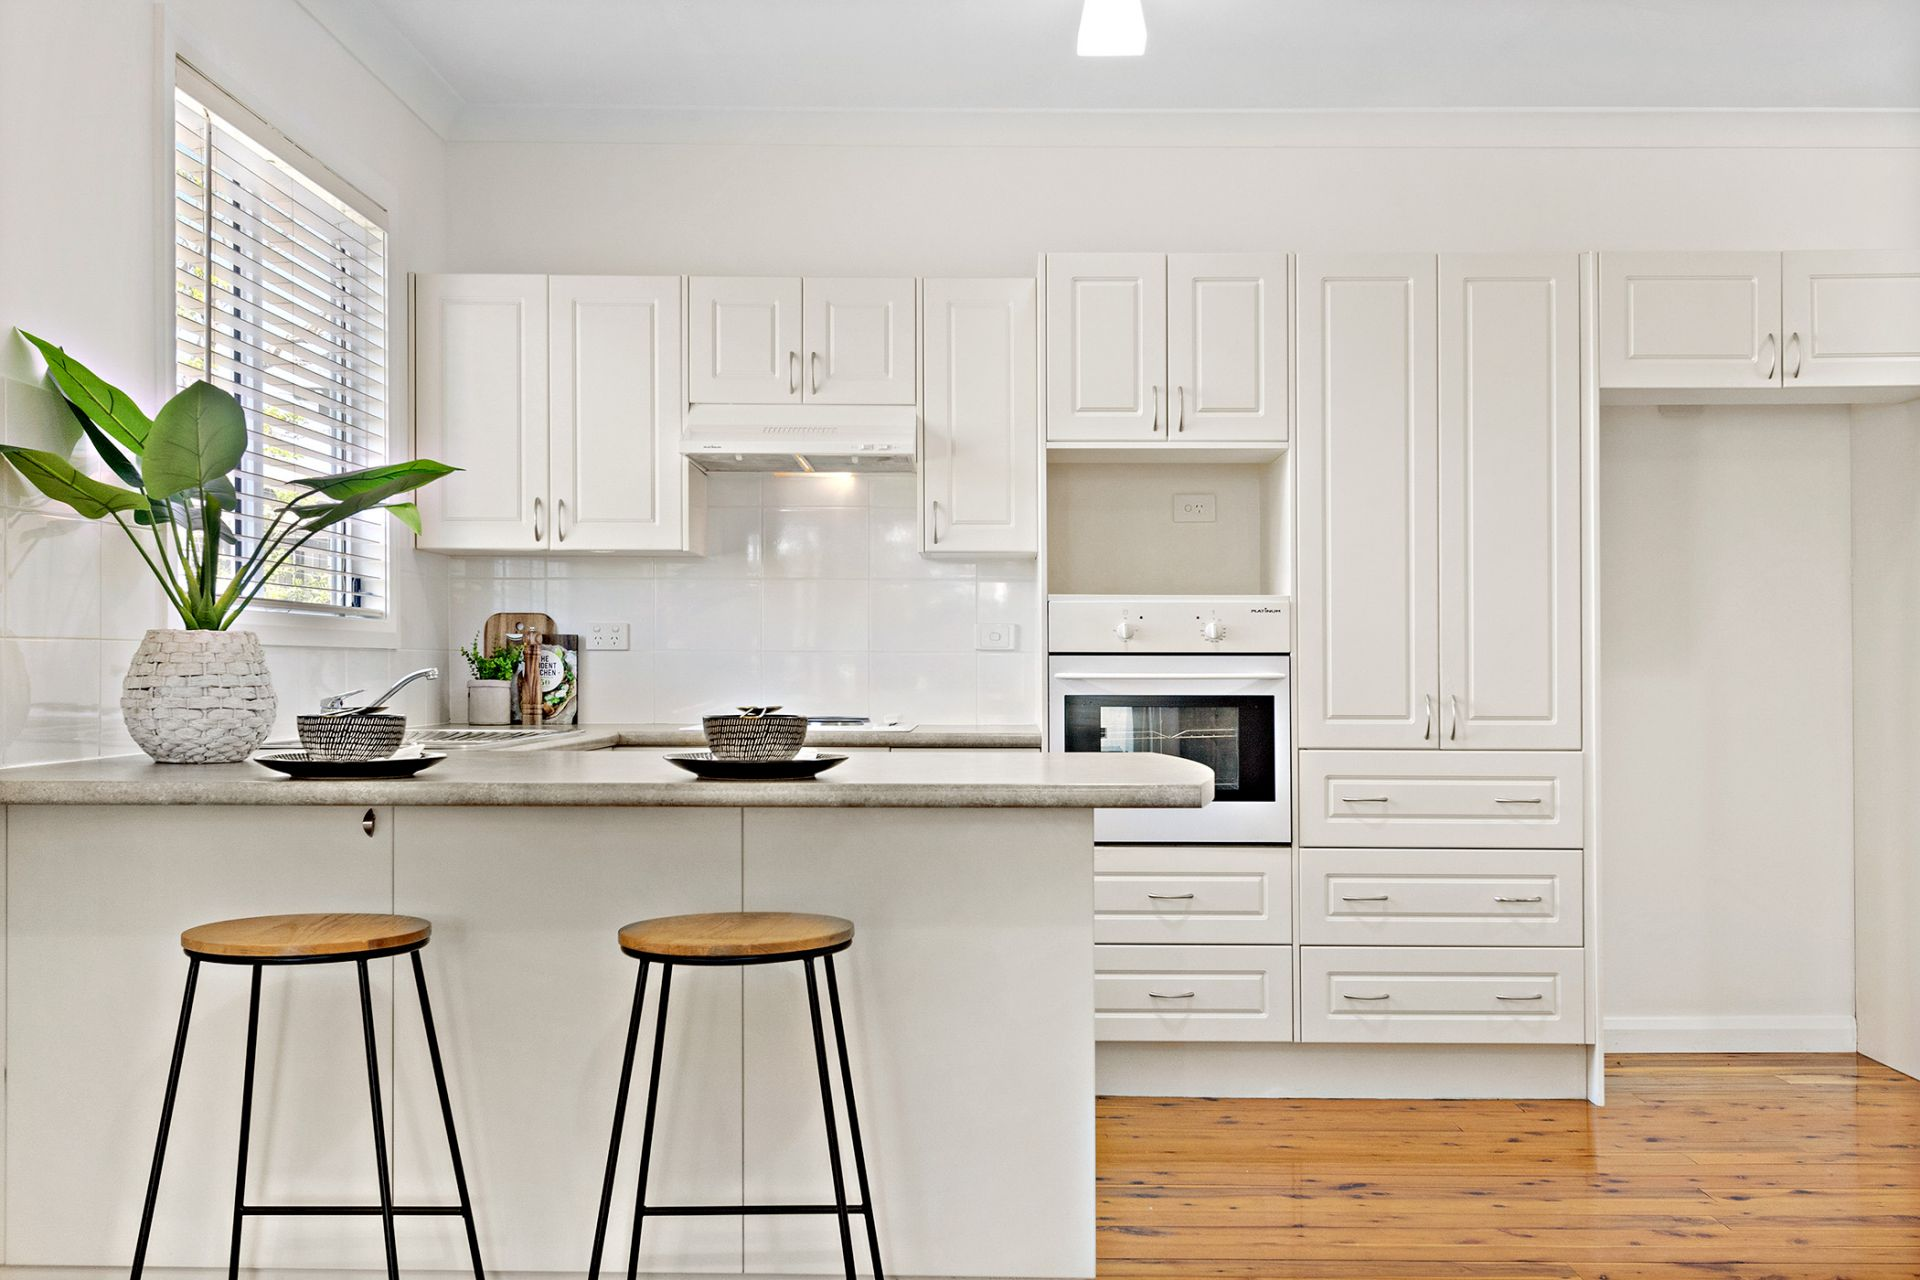 Chic cottage moments from CBD